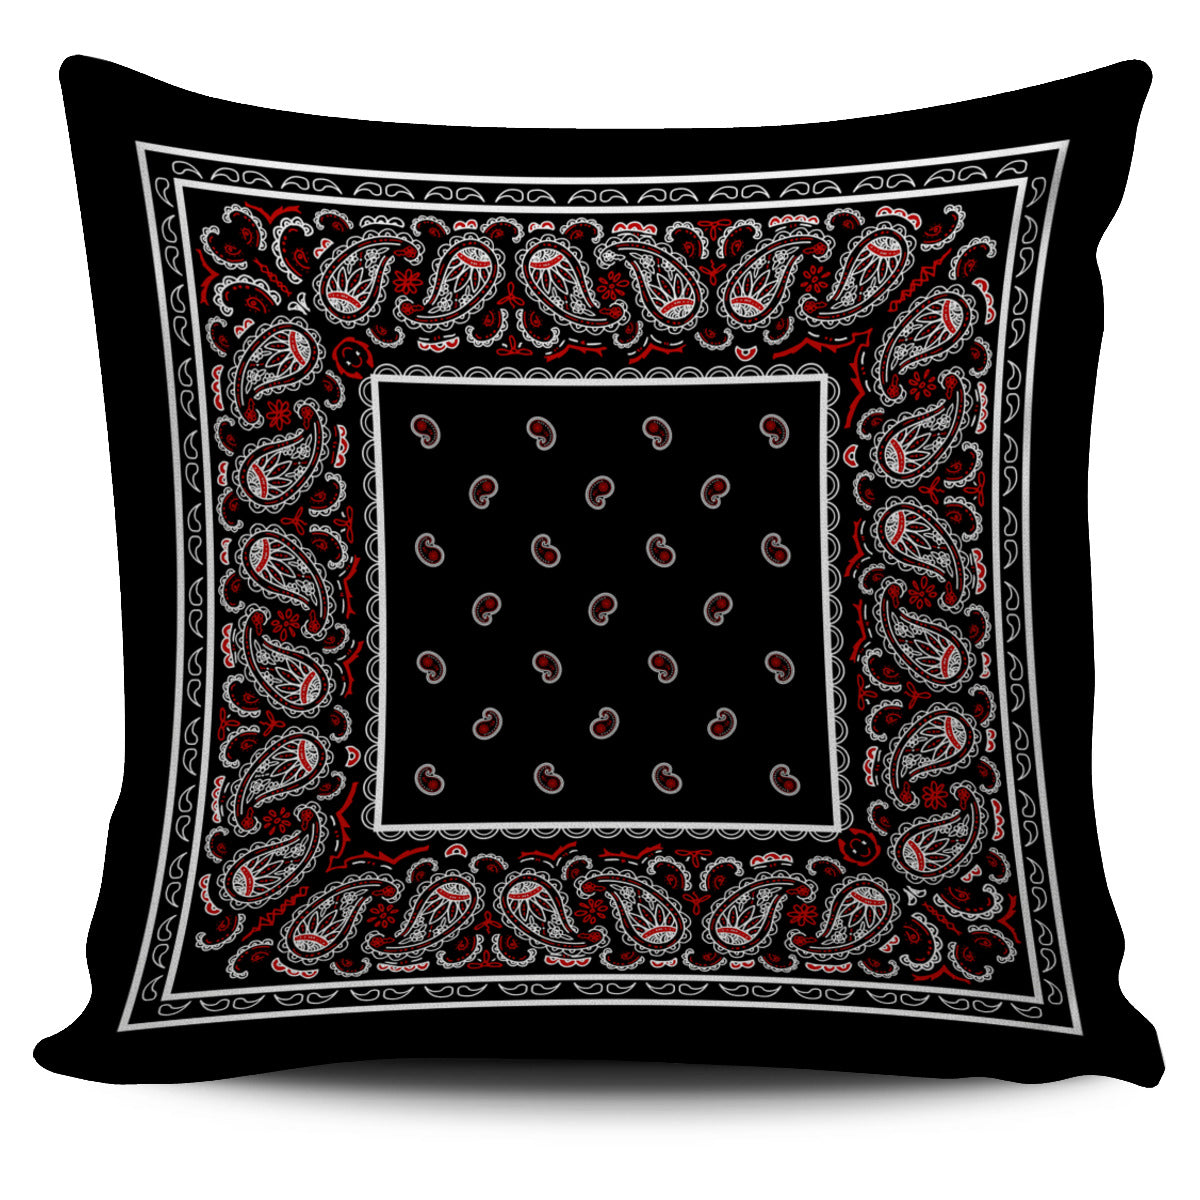 Wicked Black Bandana Throw Pillow Cover - Spangle